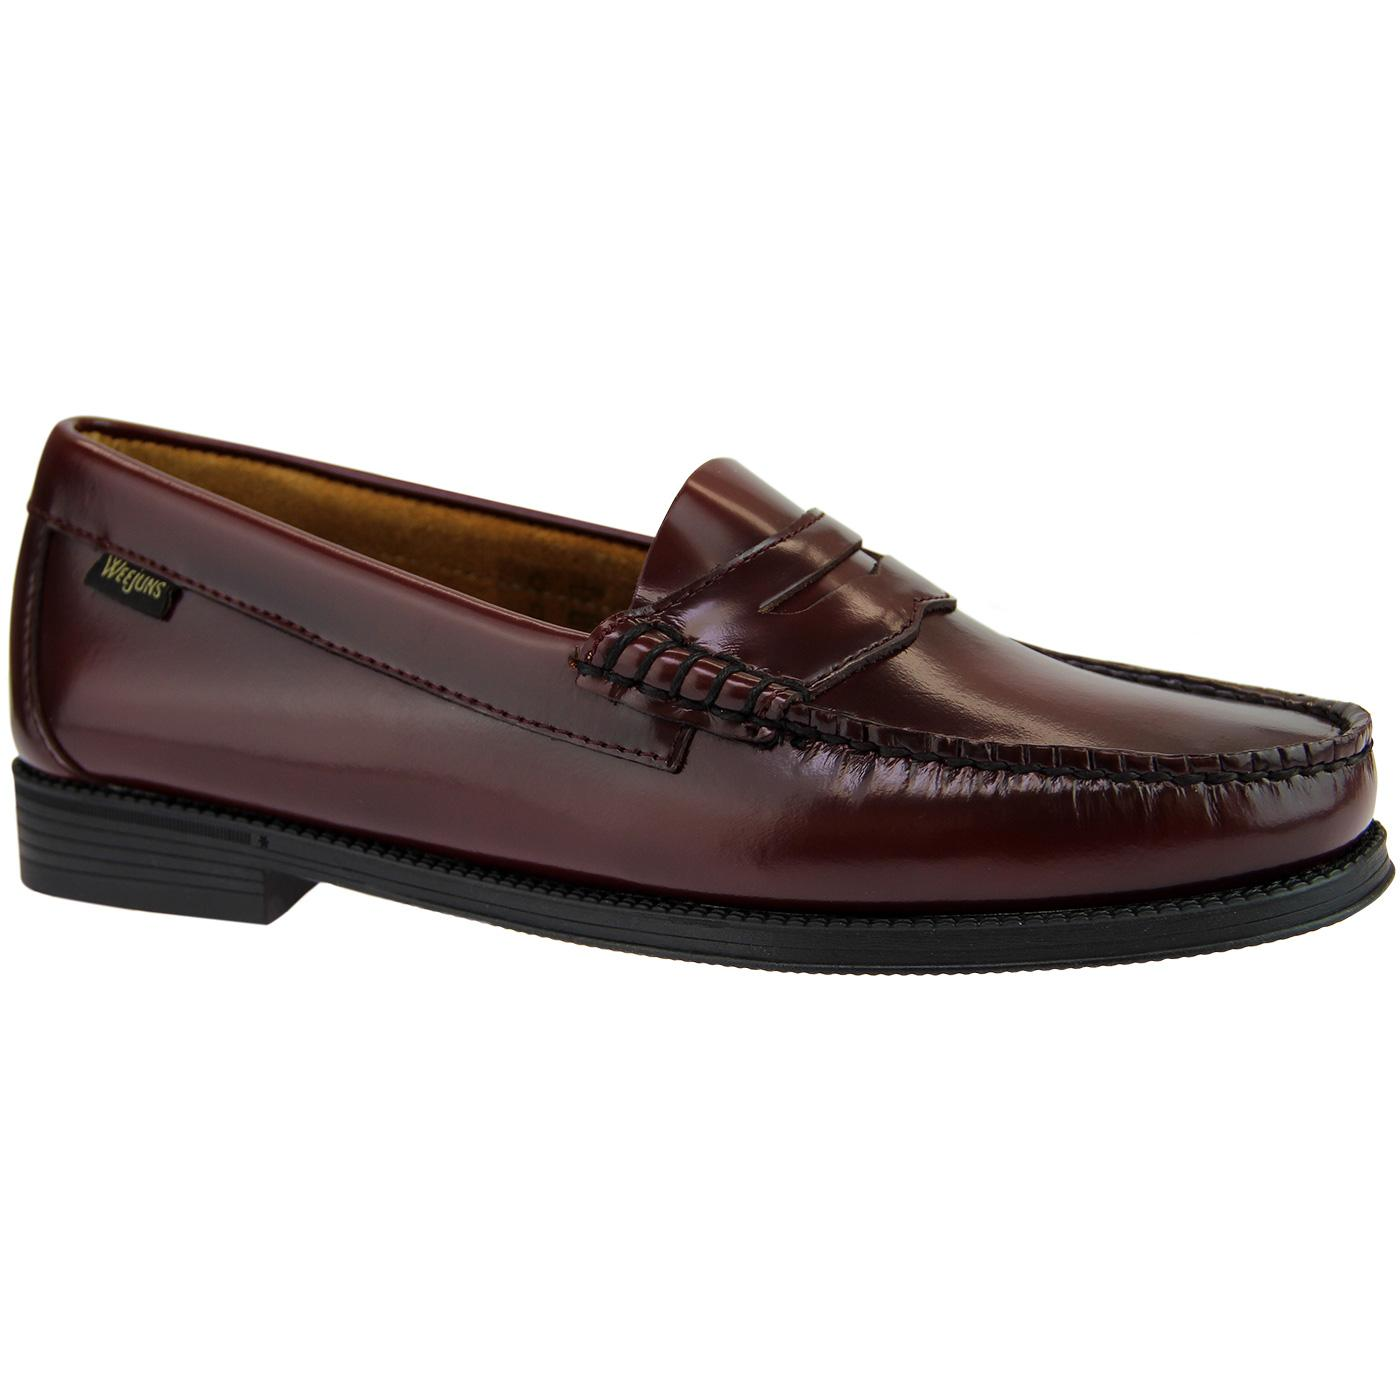 BASS WEEJUNS Women's 60's Penny Loafers WINE